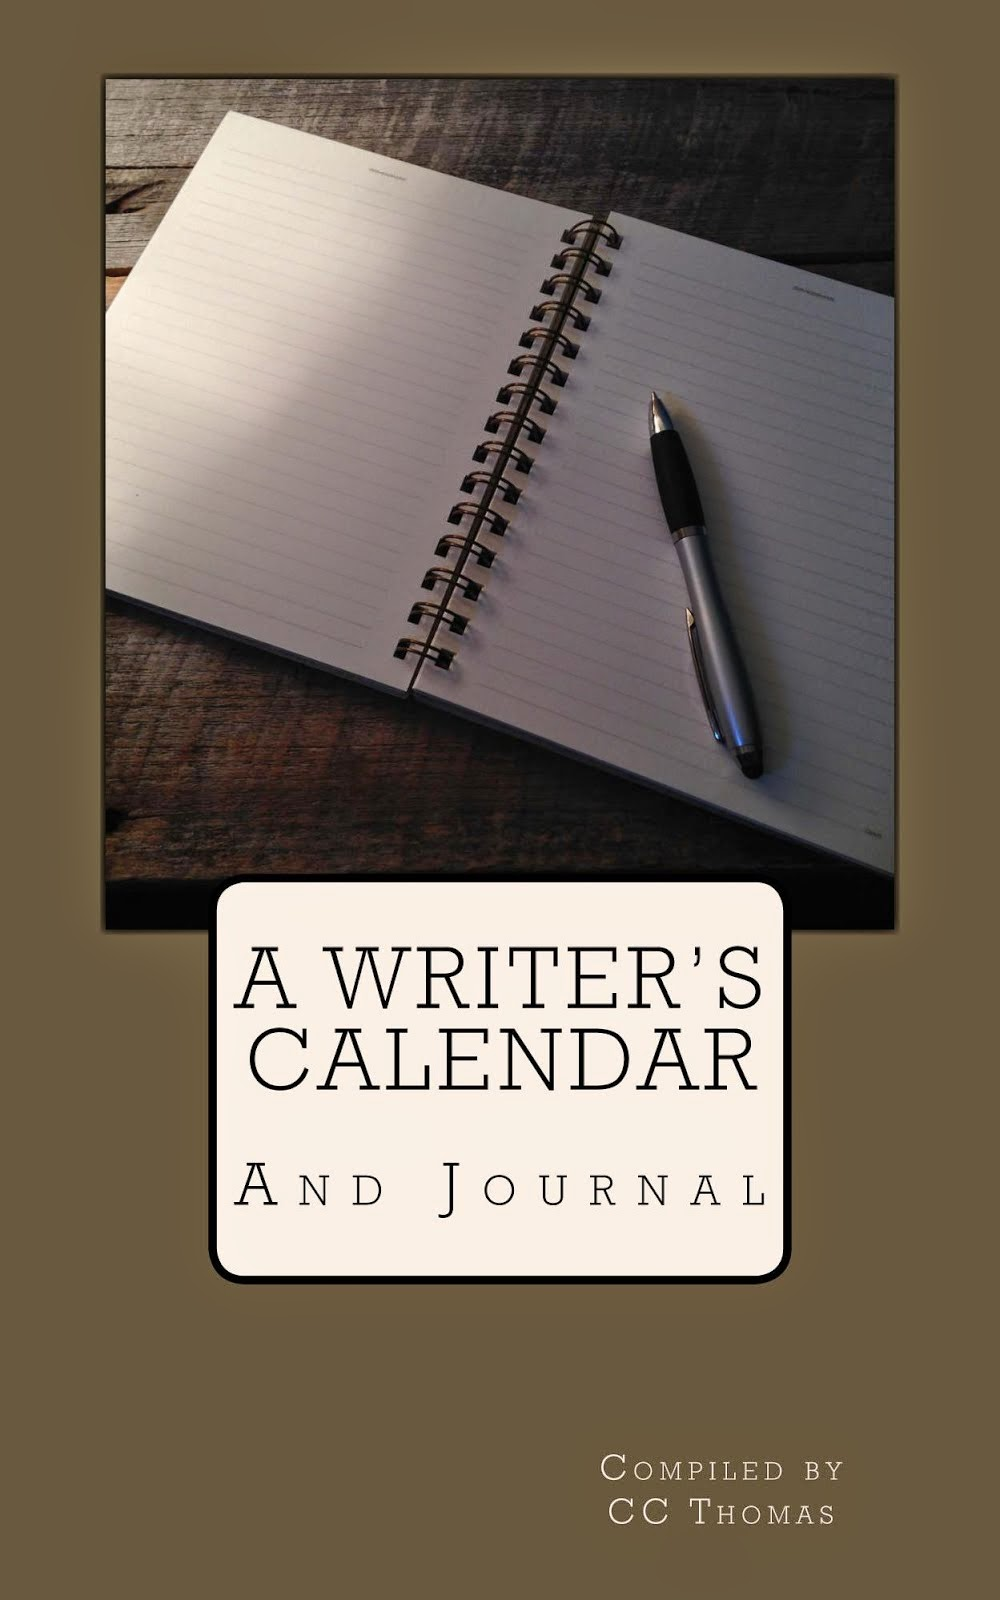 A Writer's Calendar and Journal